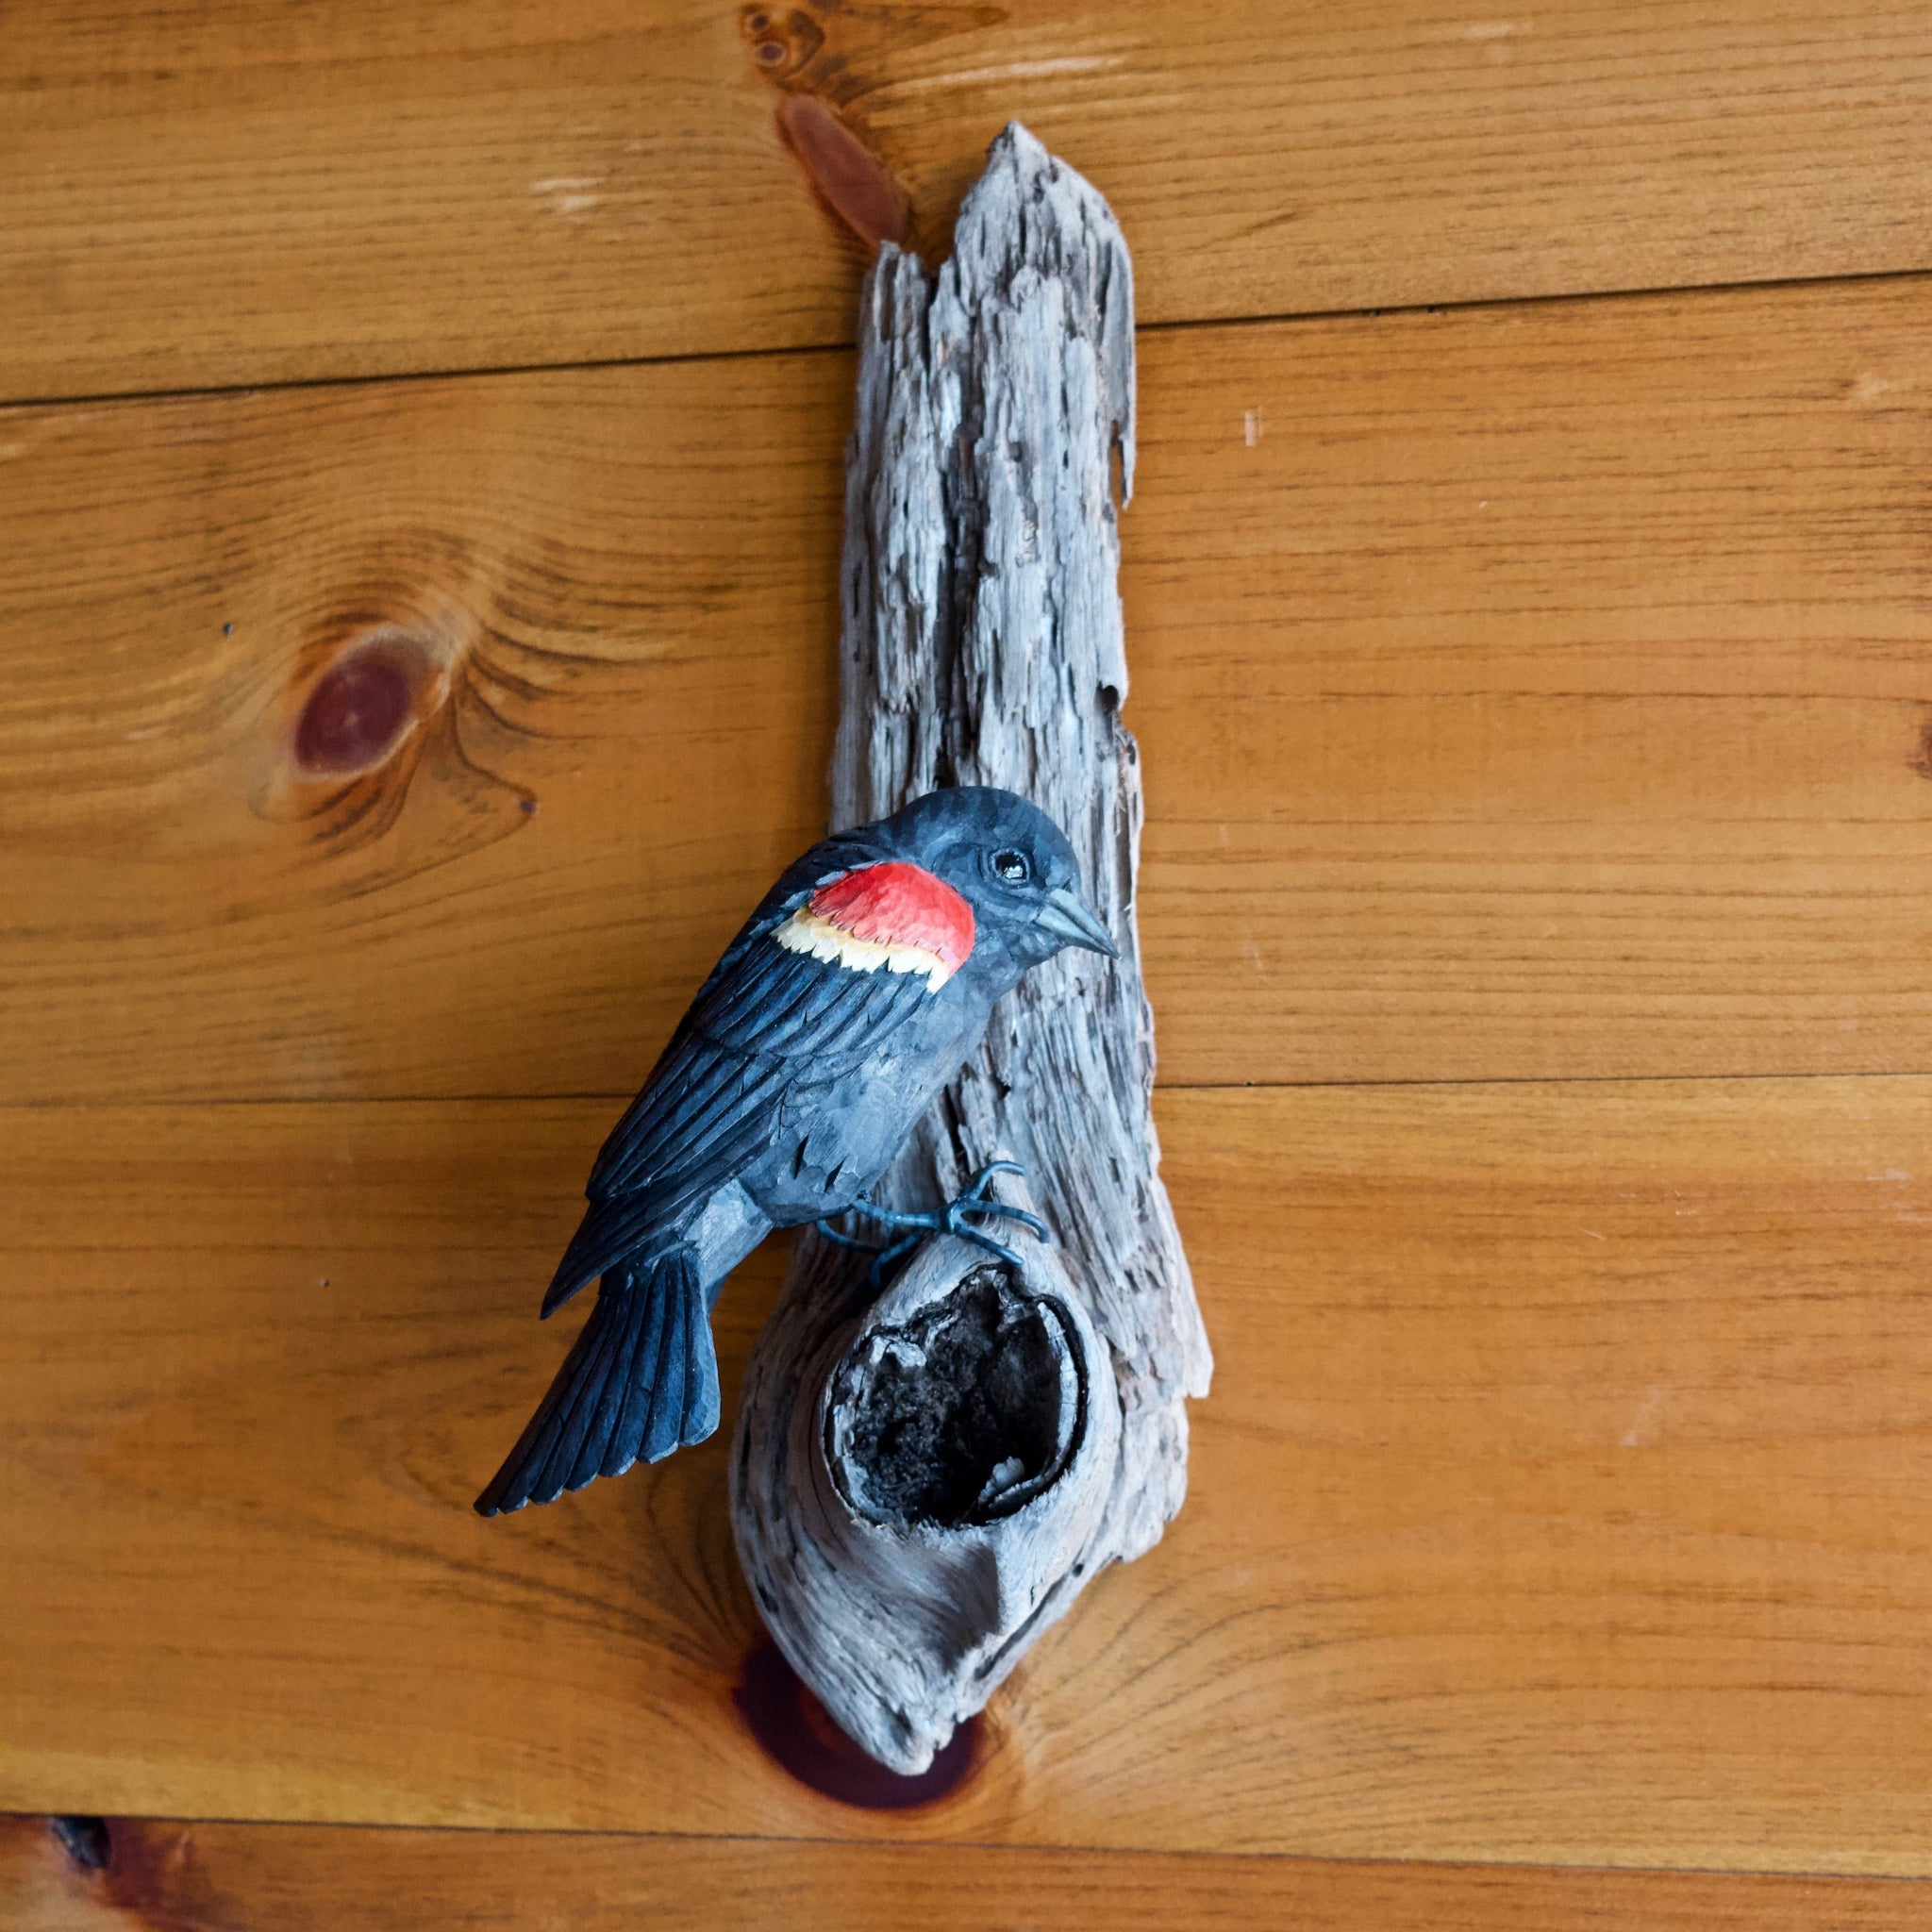 Wall Carving of Red-winged Blackbird by Allen Aardsma